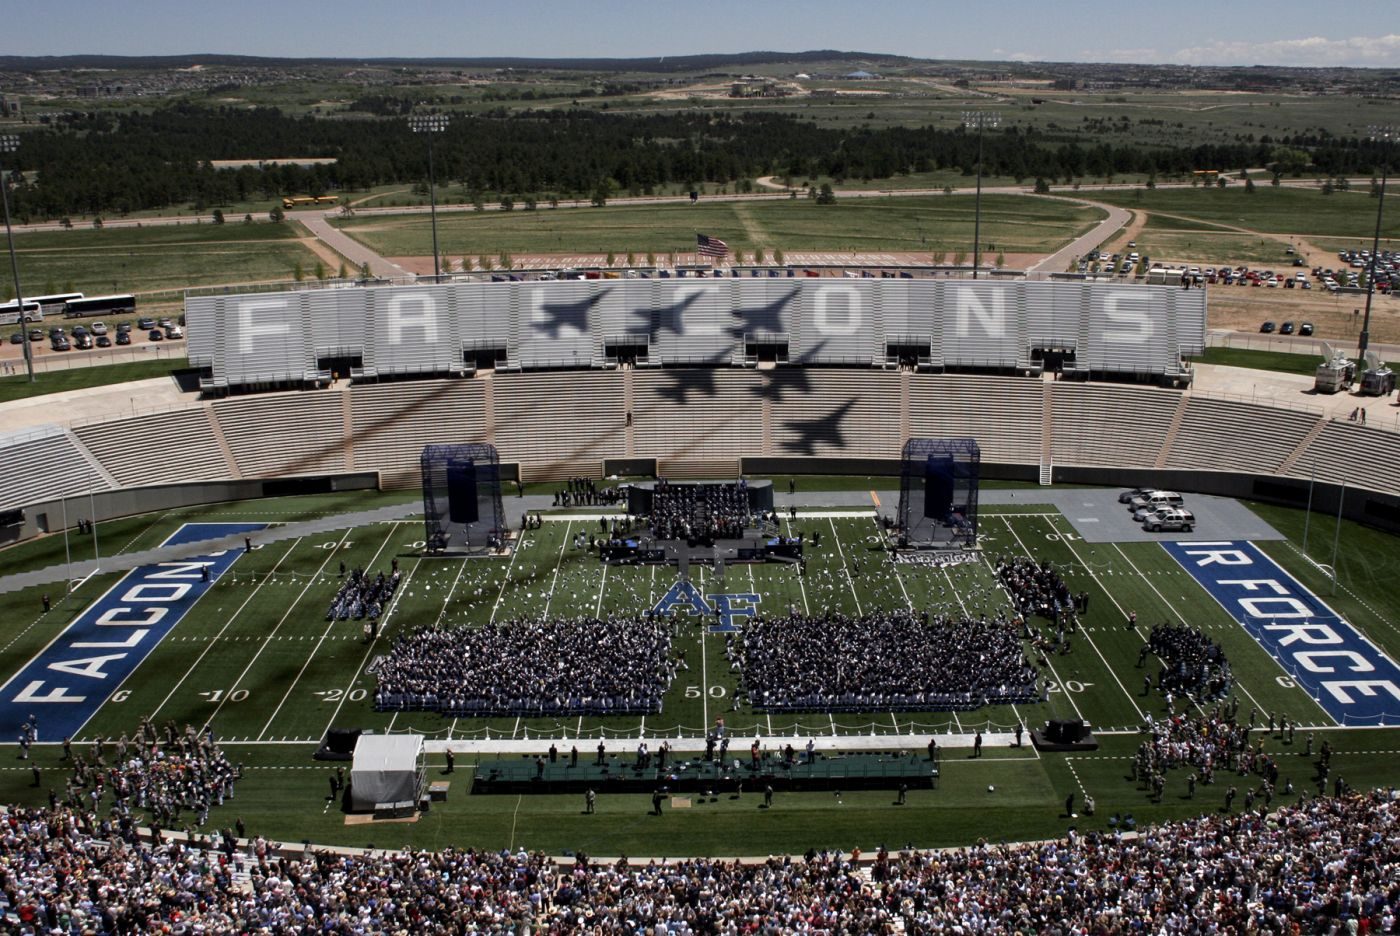 Air Force Academy Graduation Recap Air Force Academy U S Air Force Academy United States Air Force Academy